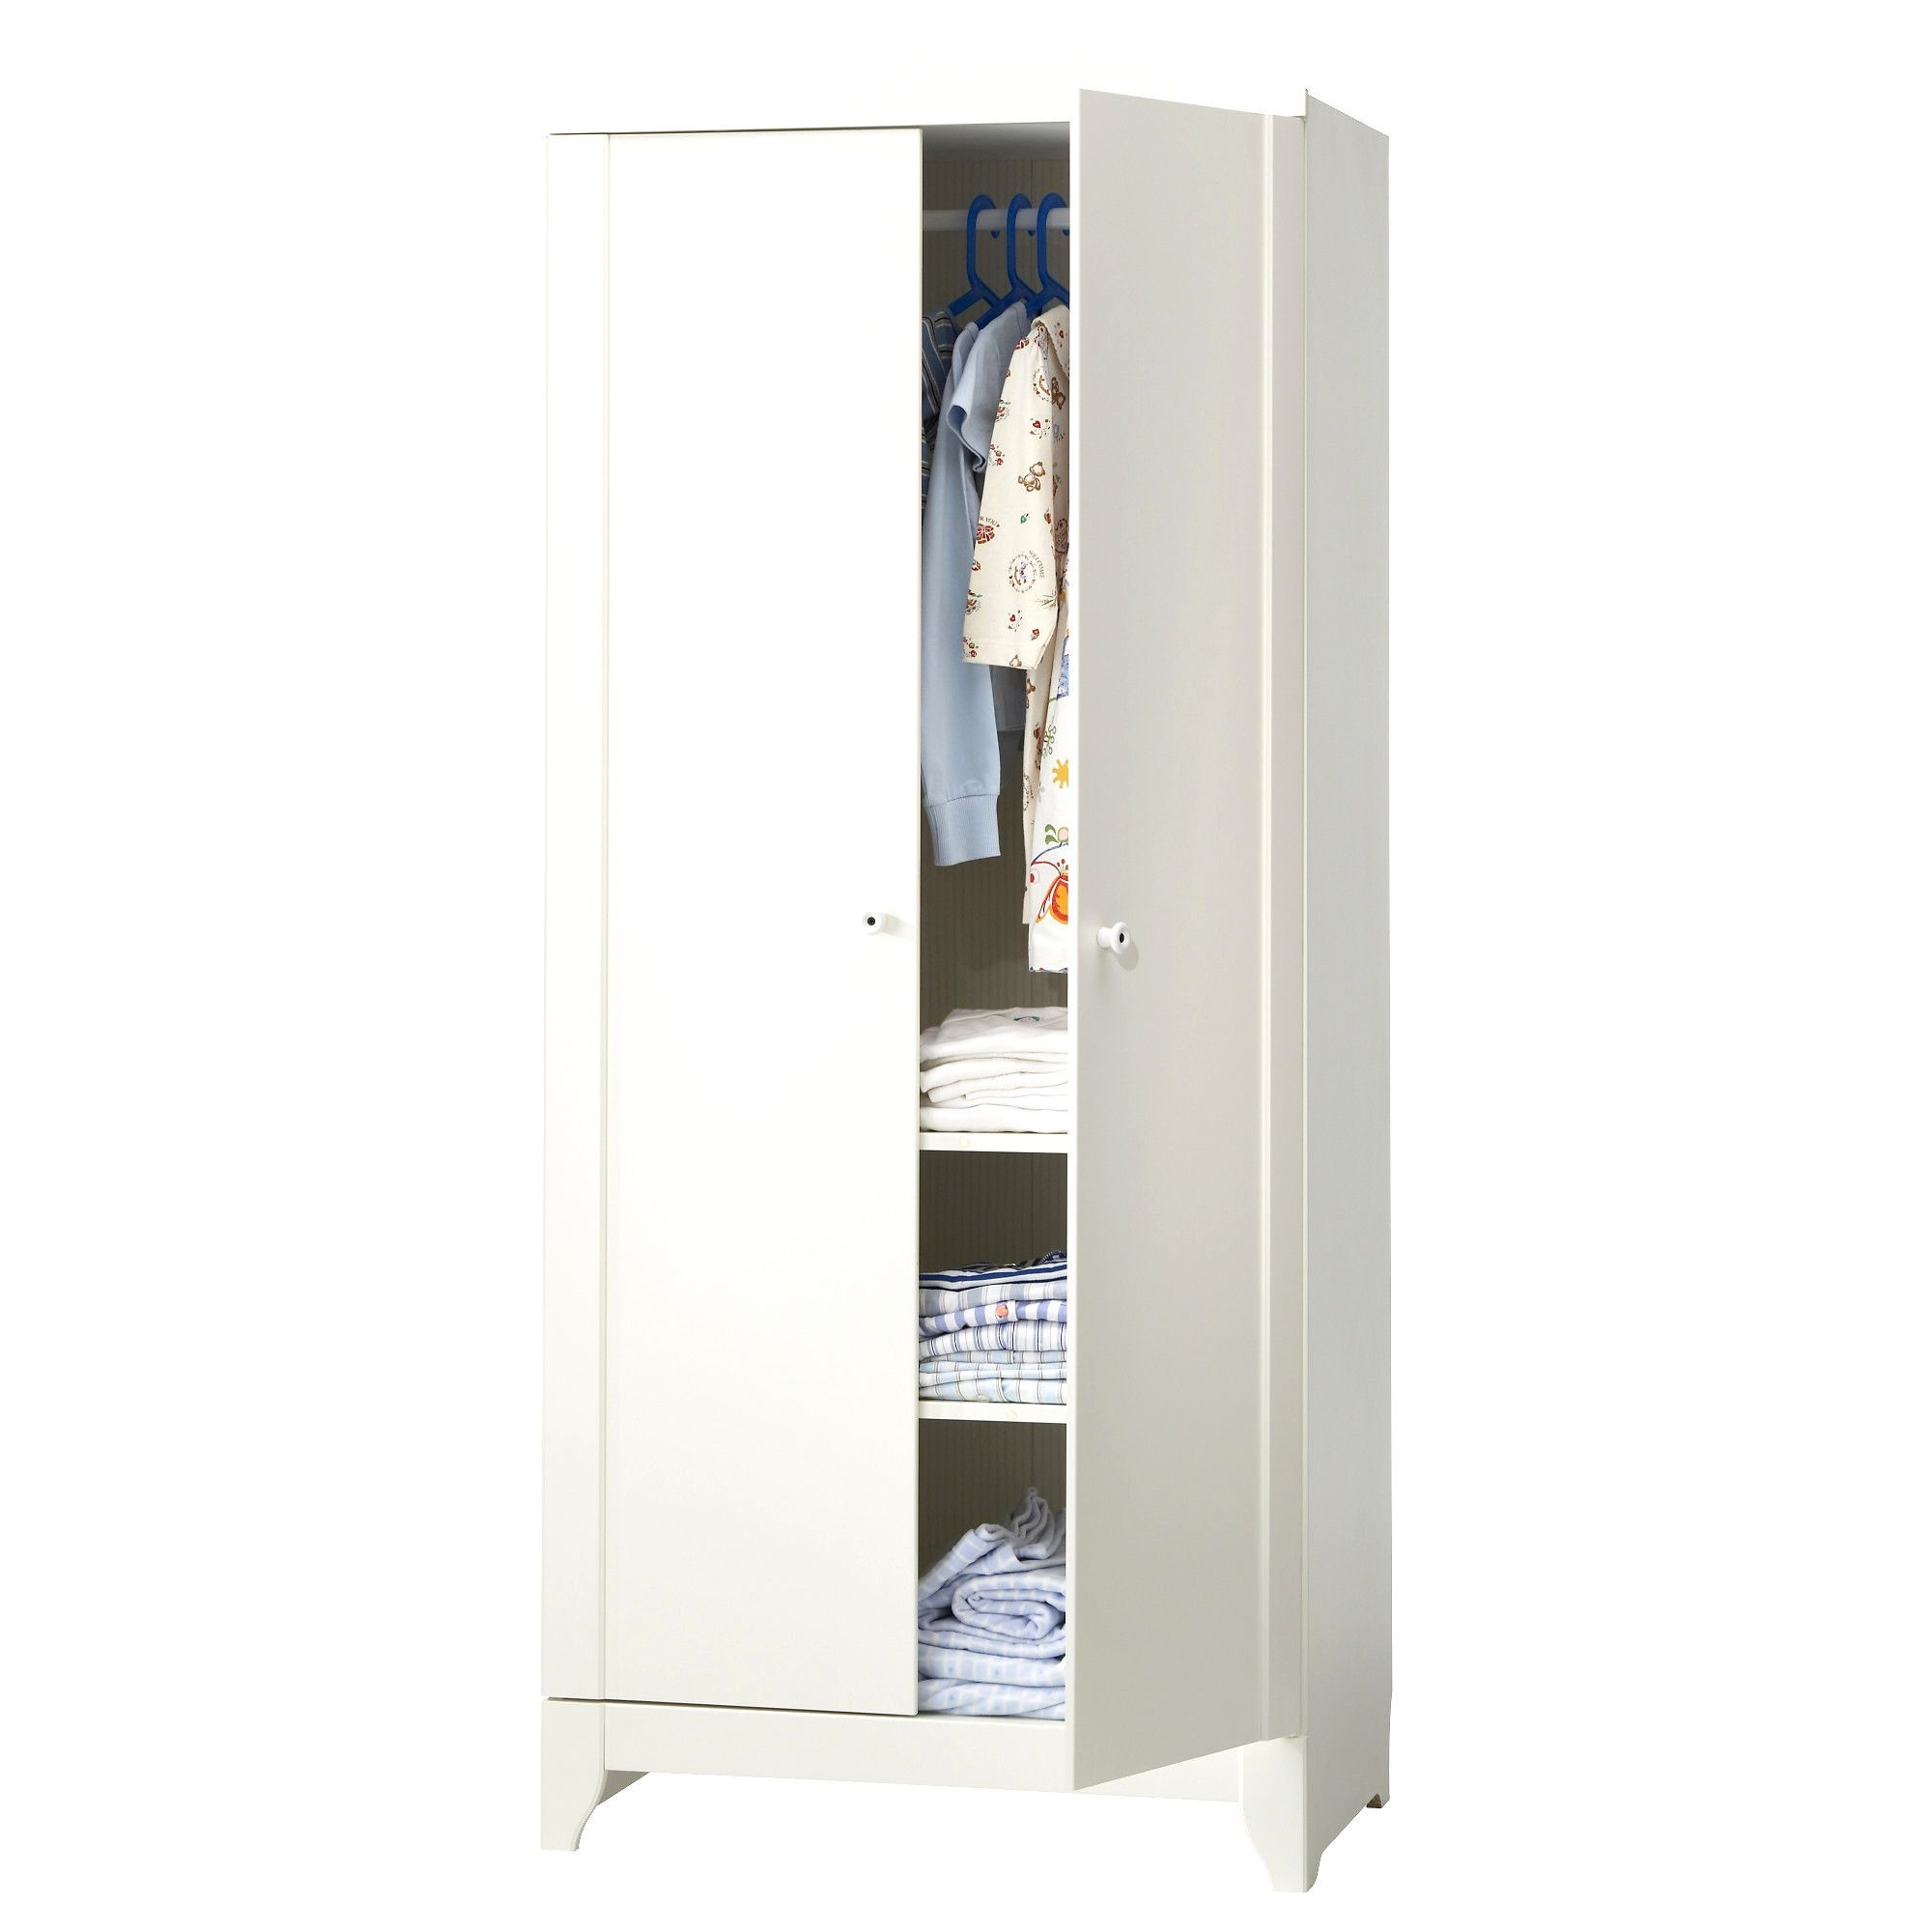 Best Of Notice Montage Armoire Porte Coulissante Conforama Locker Storage Ikea Storage